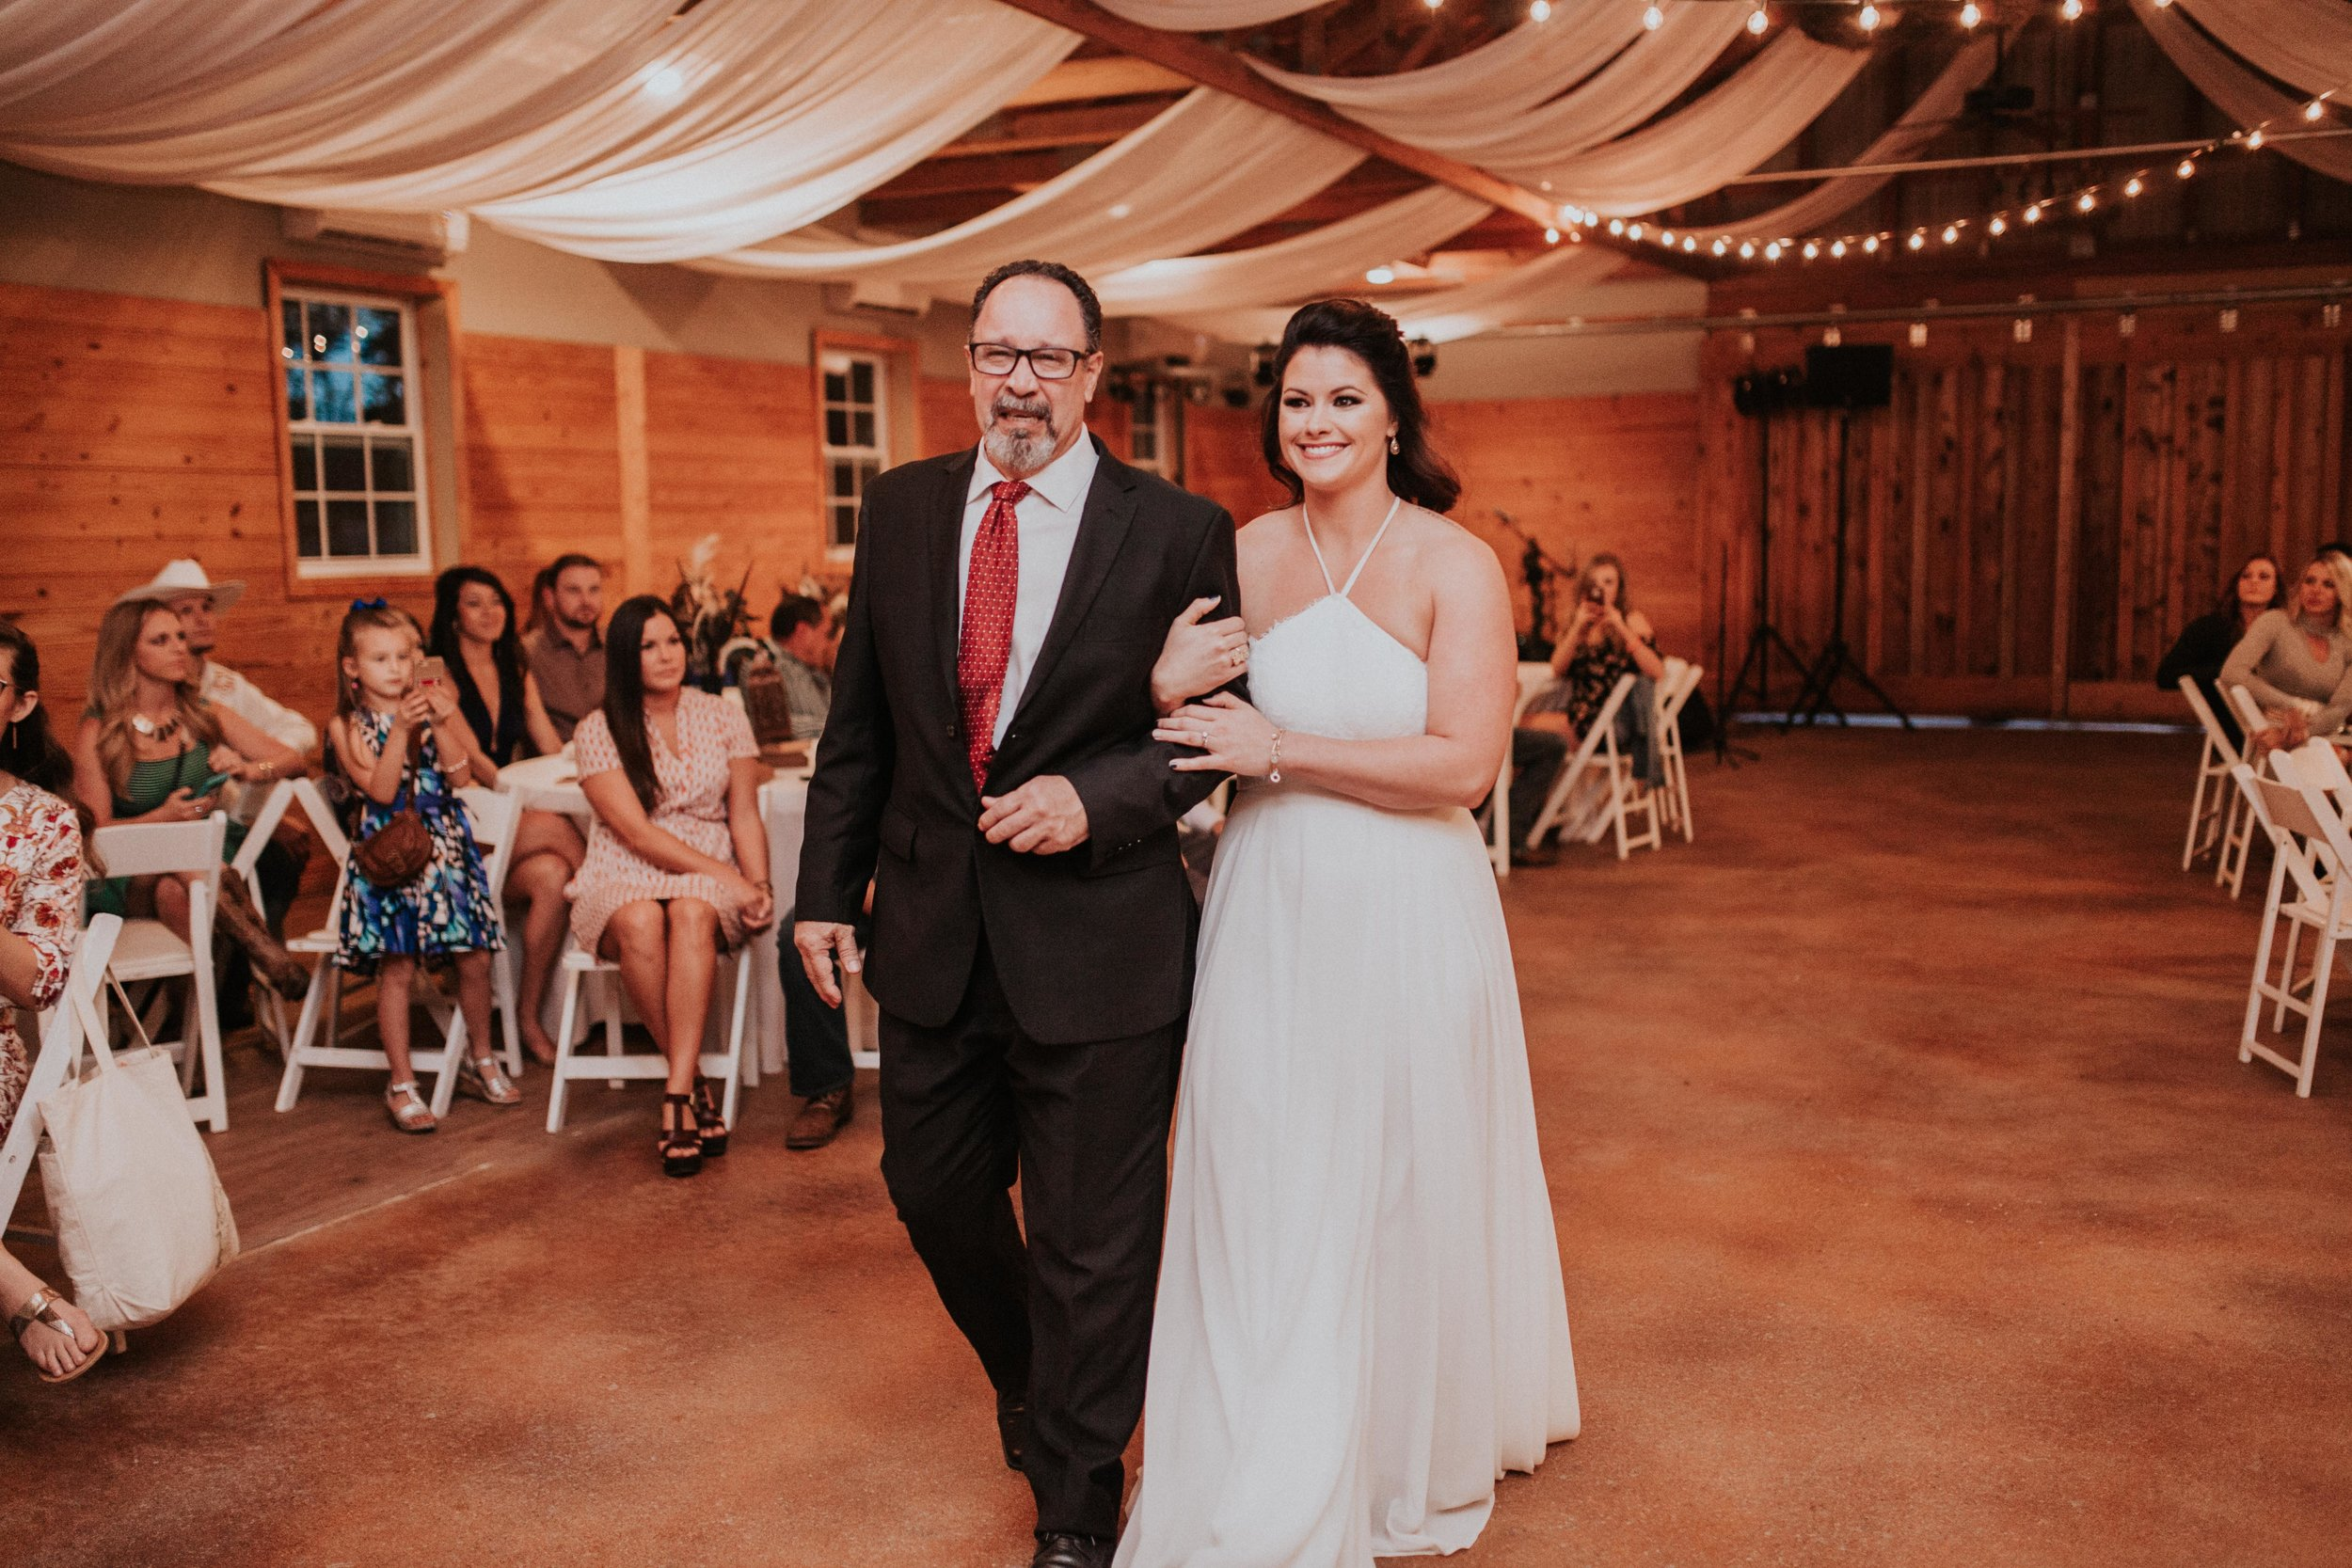 Vow Renewal in Magnolia Texas - Madeleine Frost Wedding Photographer - Sized for Blog-94.jpg